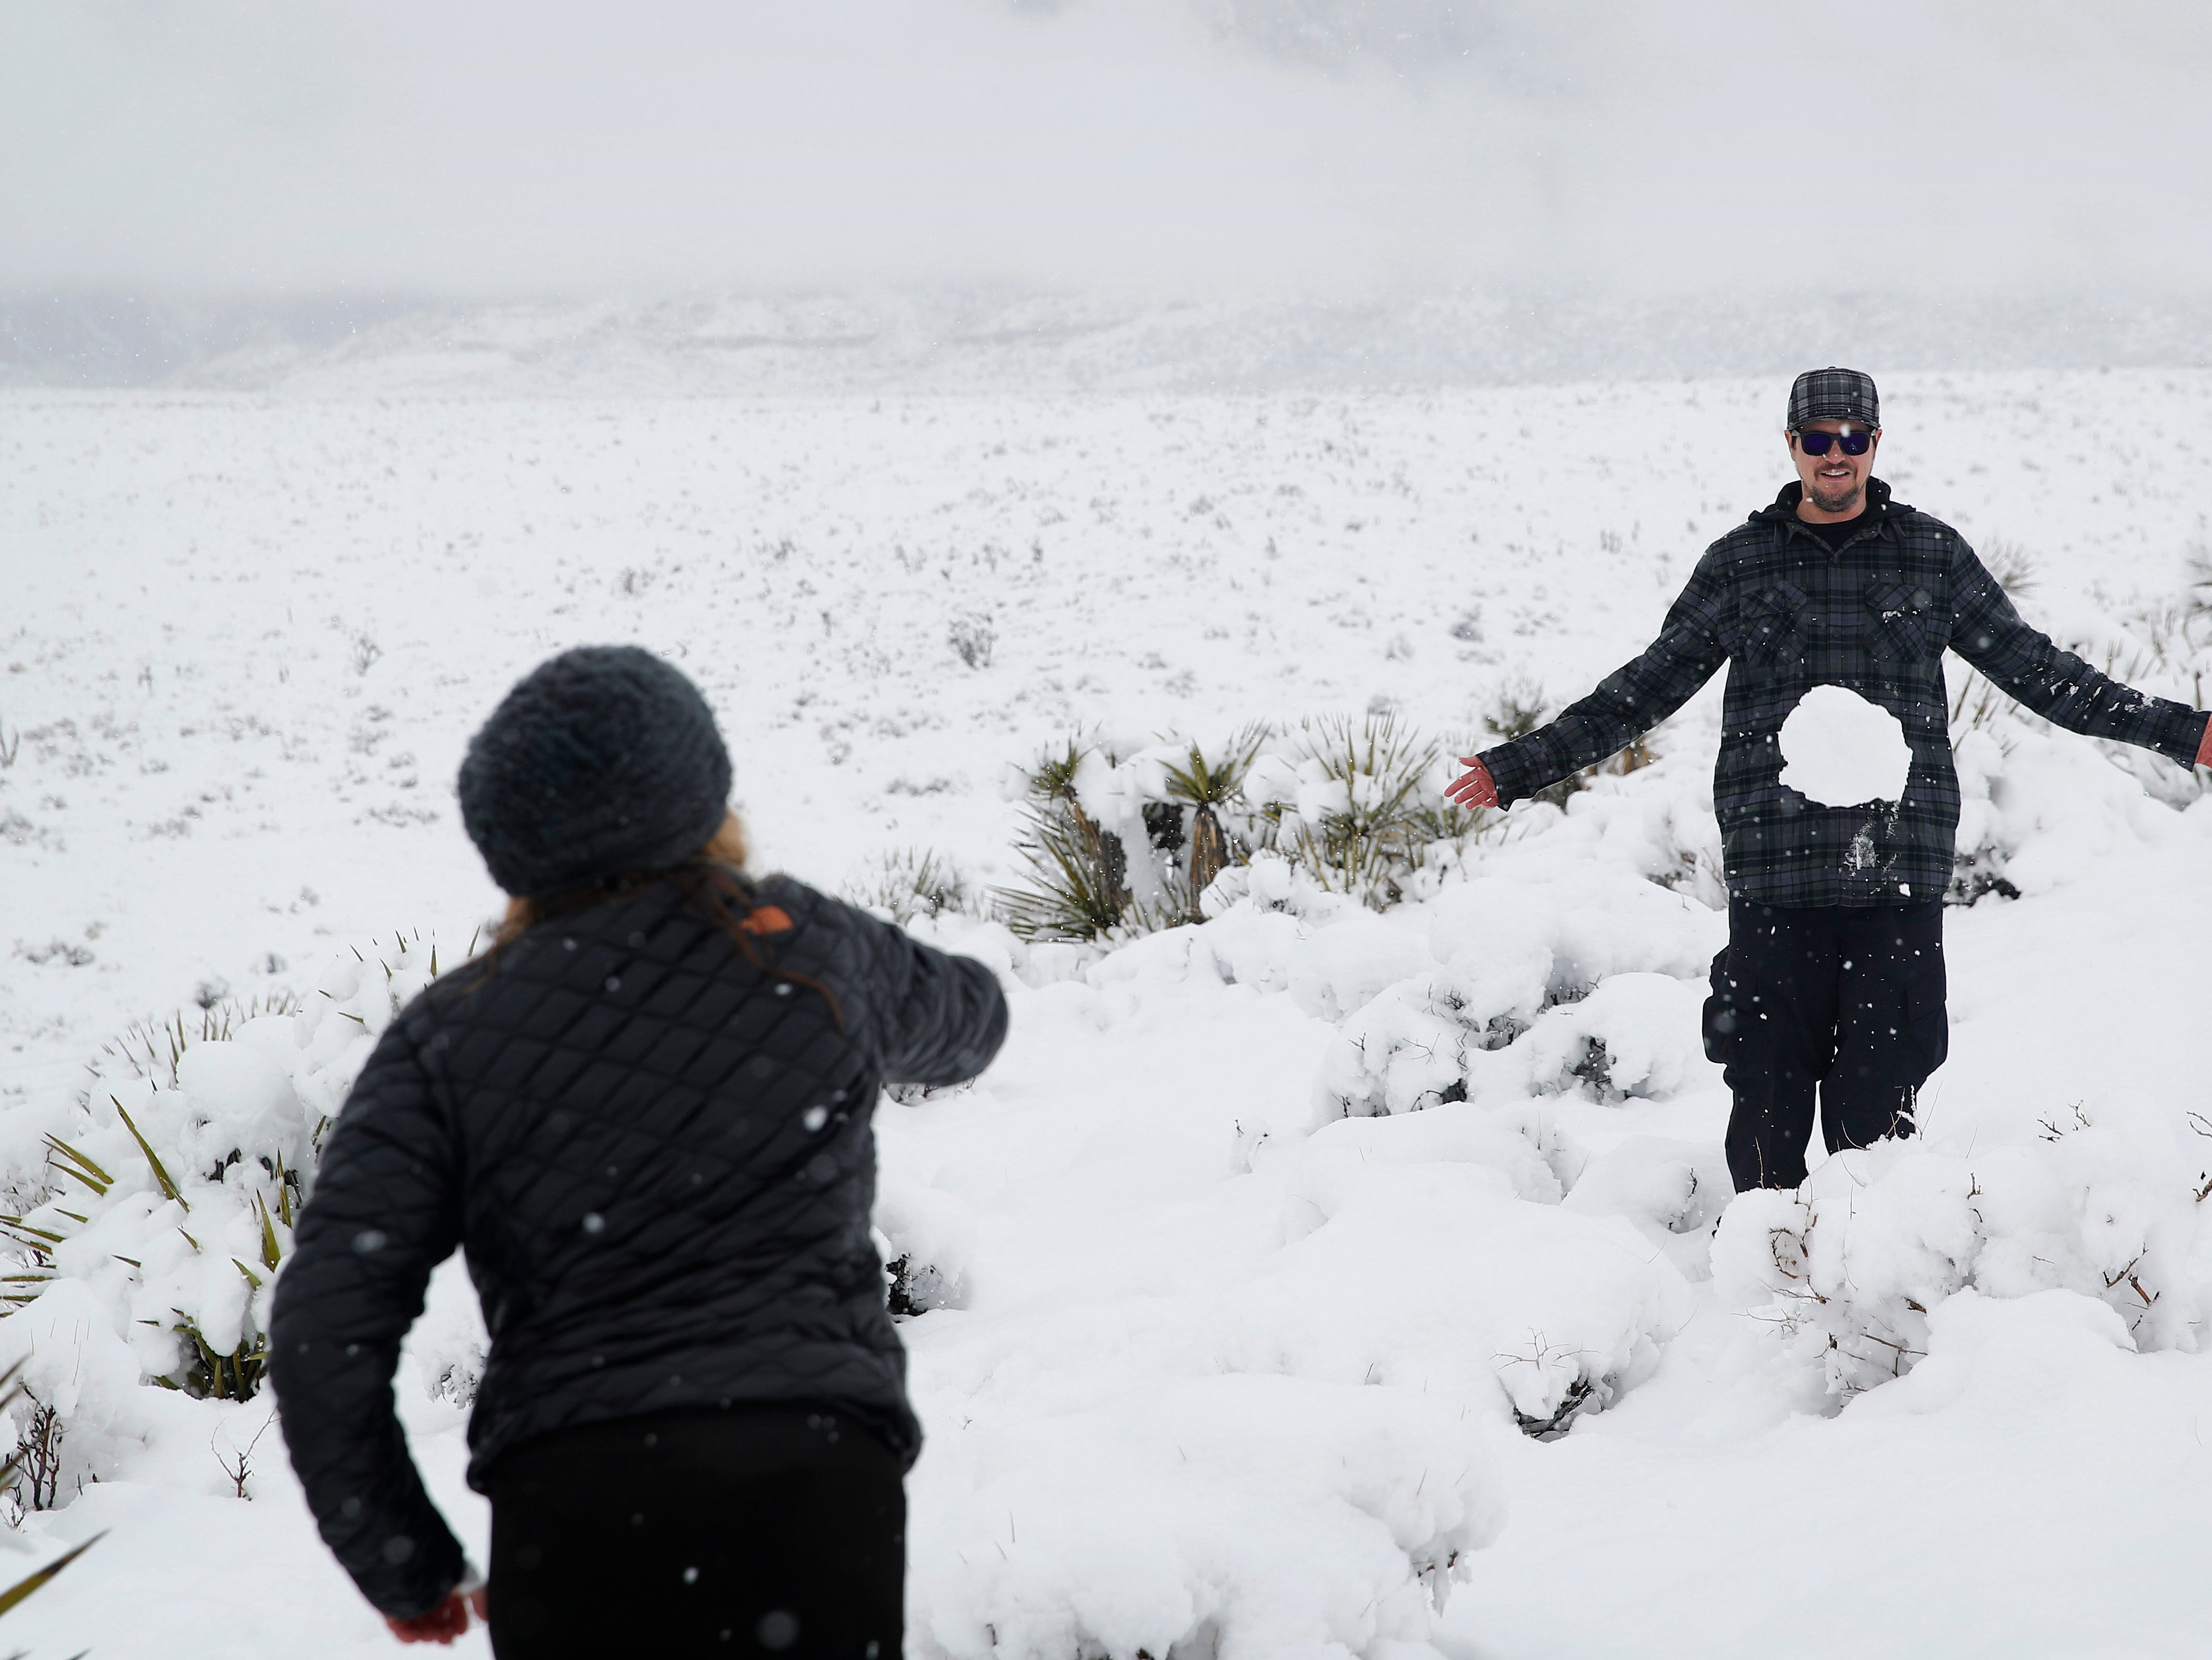 Nancy Knapp, left, throws a snowball at her son Zak Bagans at Red Rock National Conservation Area after a winter storm dropped several inches of snow, Thursday, Feb. 21, 2019, near Las Vegas. Bagans is the host of the the TV show Ghost Adventures. (AP Photo/John Locher)